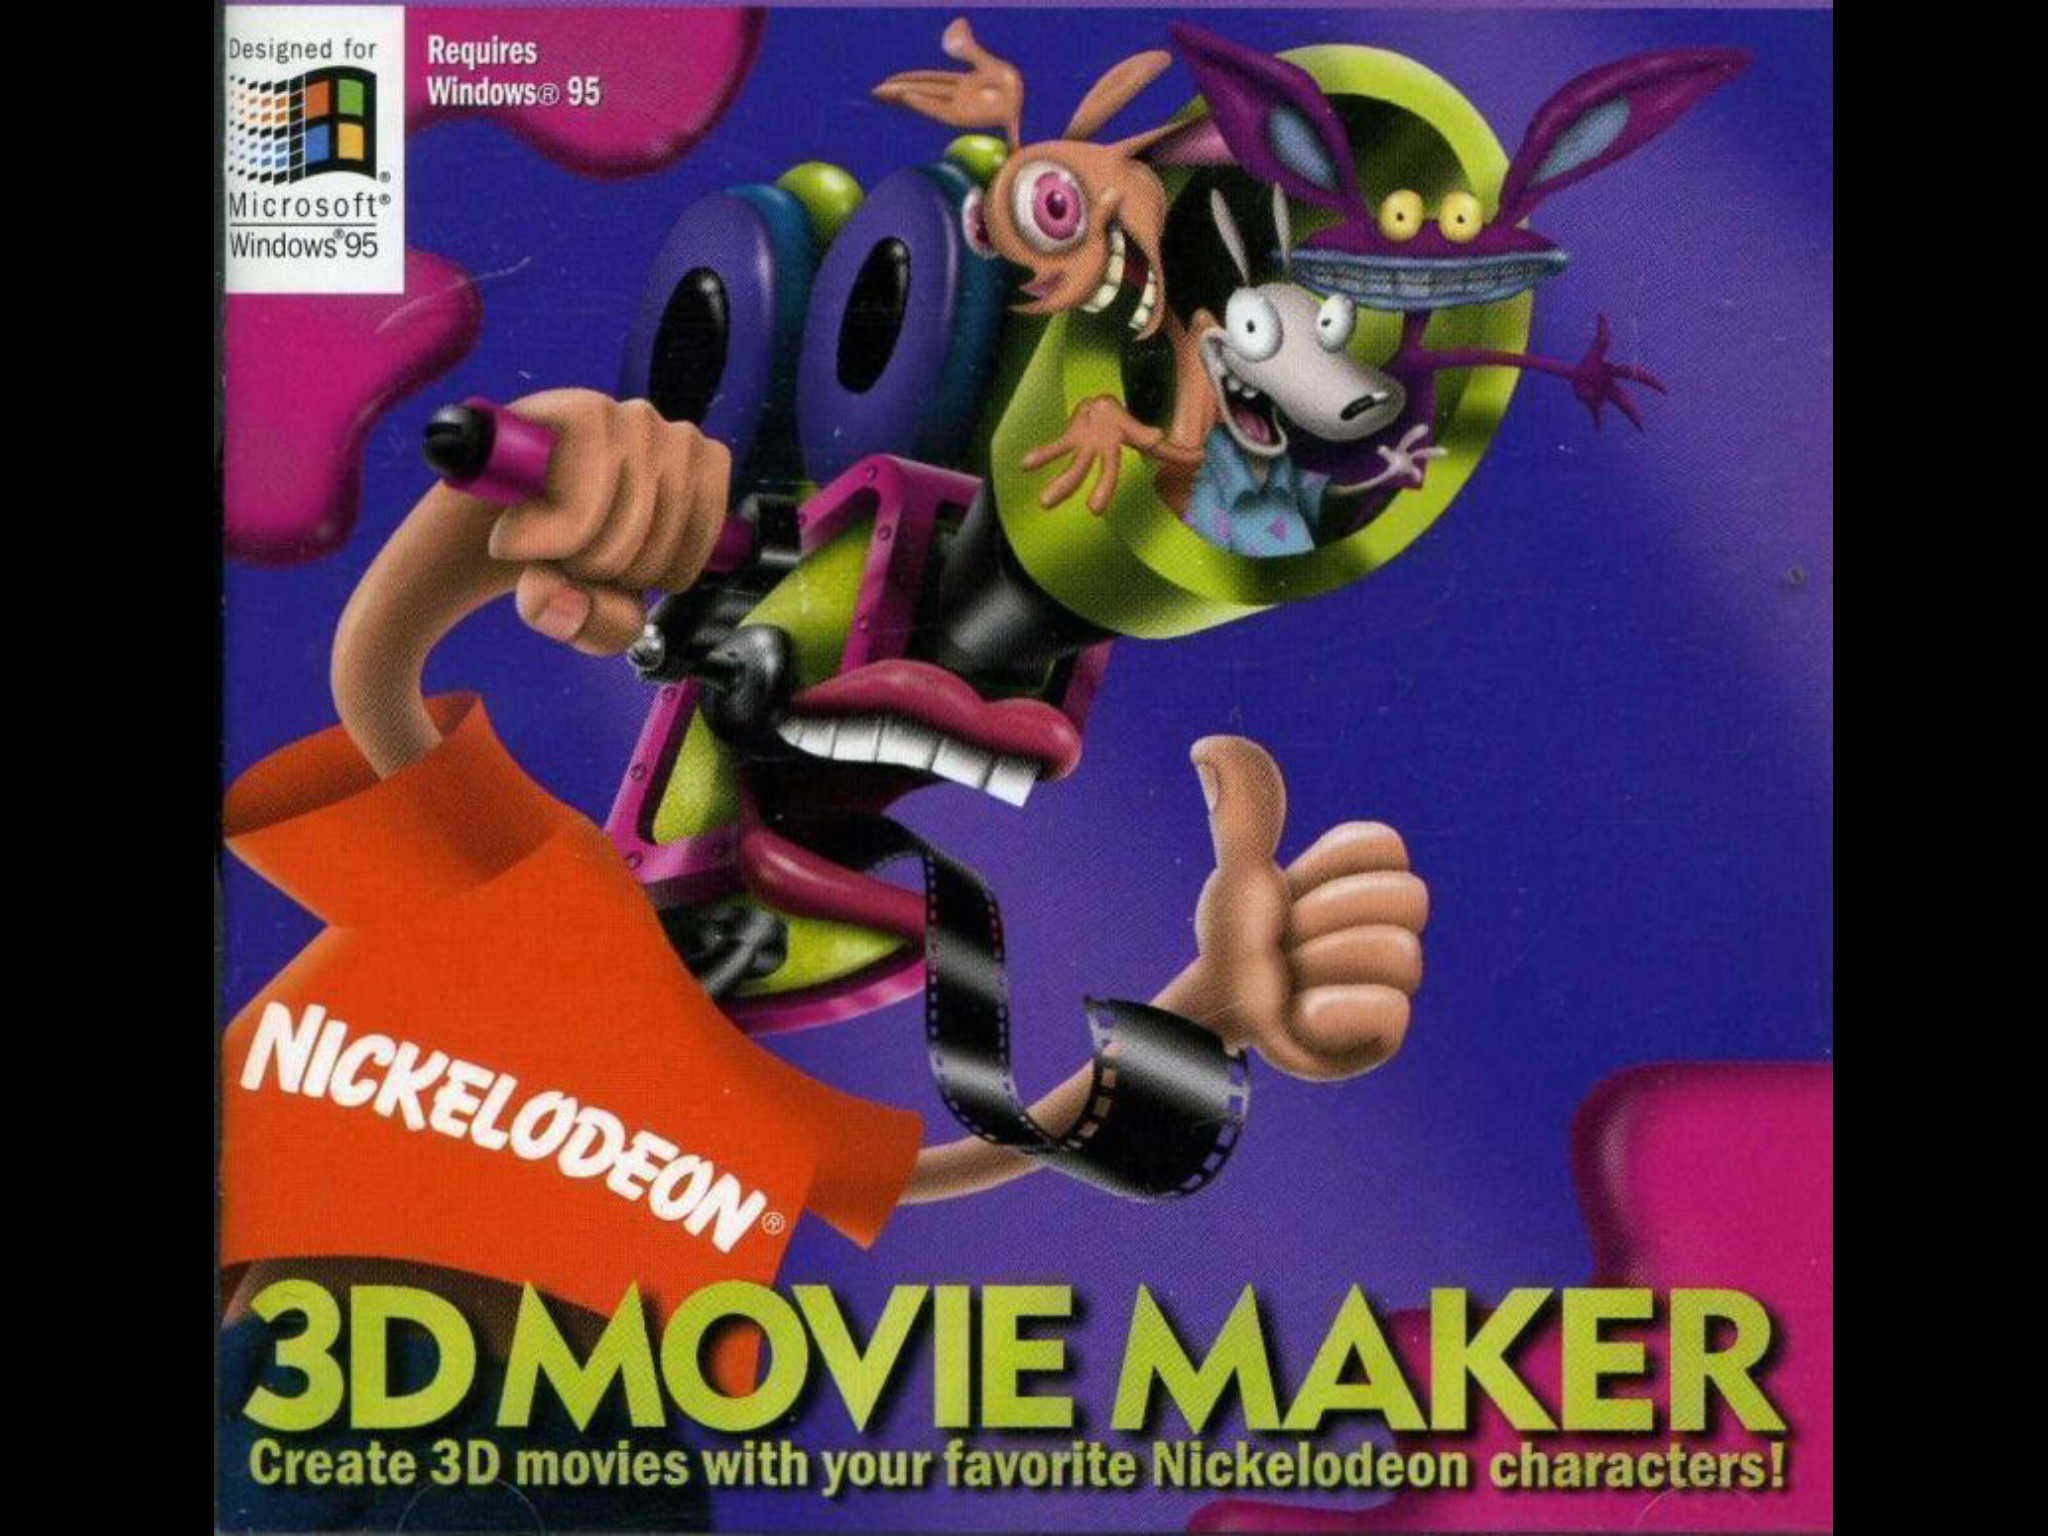 Microsoft Nickelodeon 3D Movie Maker